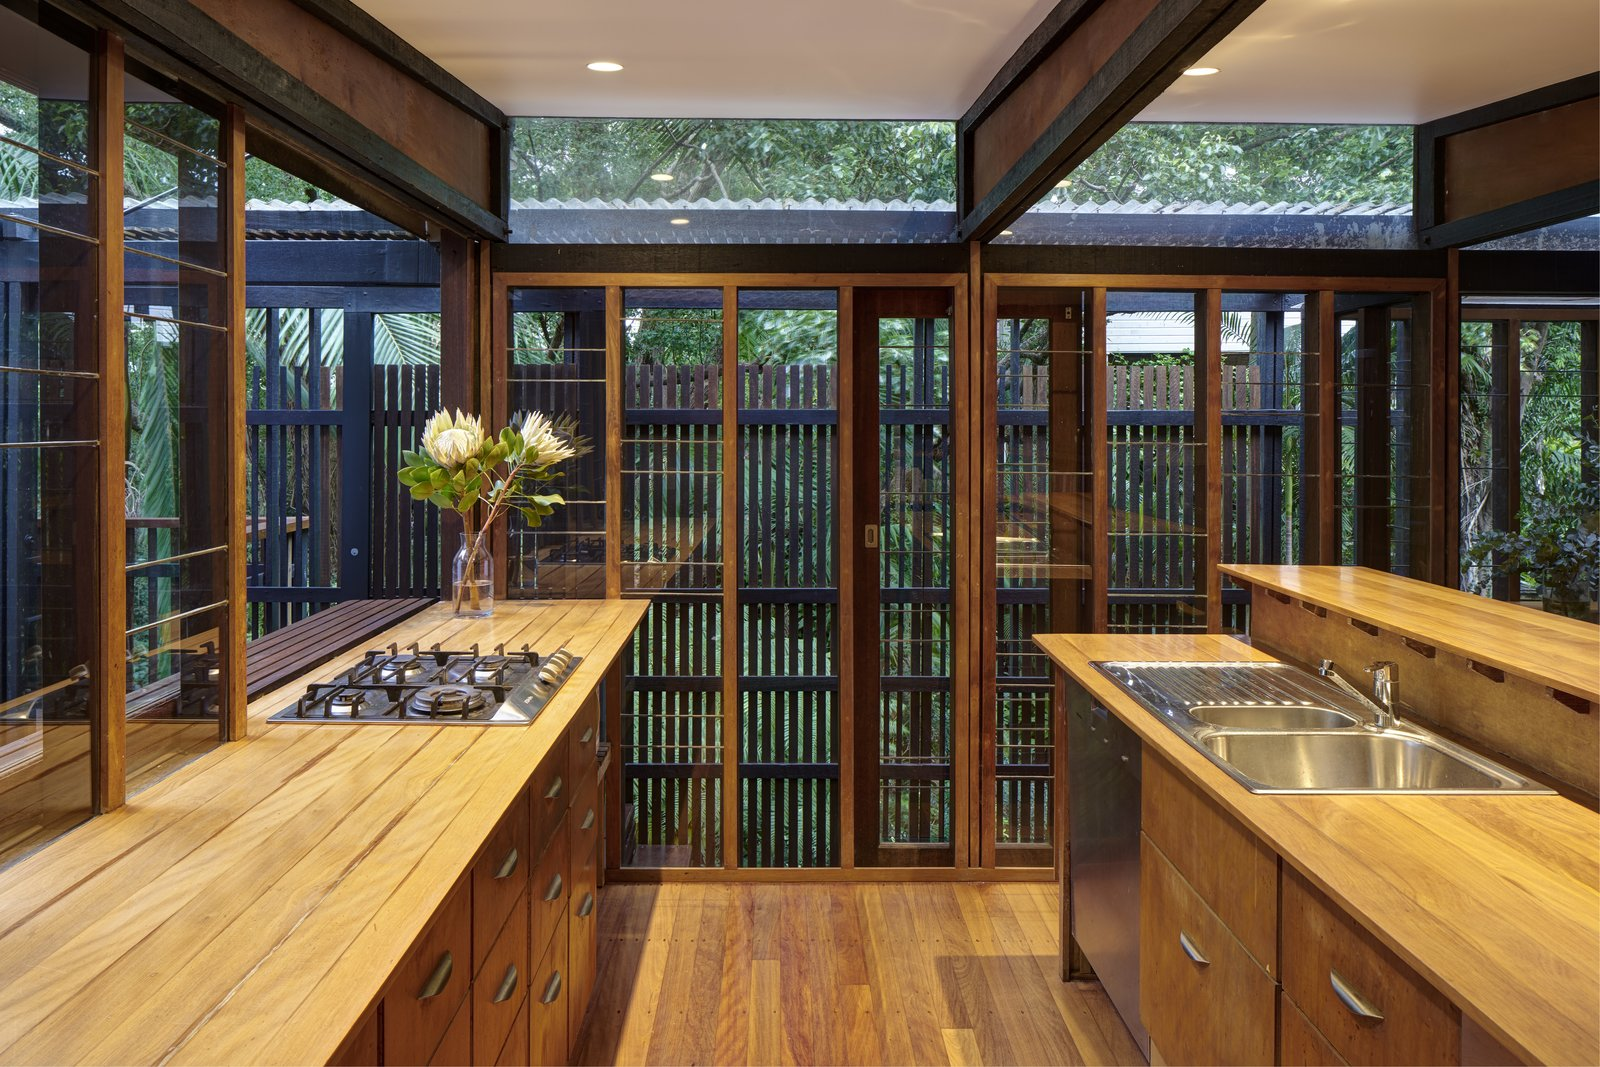 Kitchen, Wood, Drop In, Wood, Medium Hardwood, Dishwasher, Recessed, and Cooktops Within each pavilion are spaces for sleeping, bathing, working, eating, socializing, reading and contemplation.  Best Kitchen Medium Hardwood Wood Photos from This Brisbane Home For Sale Is a Lush Sanctuary